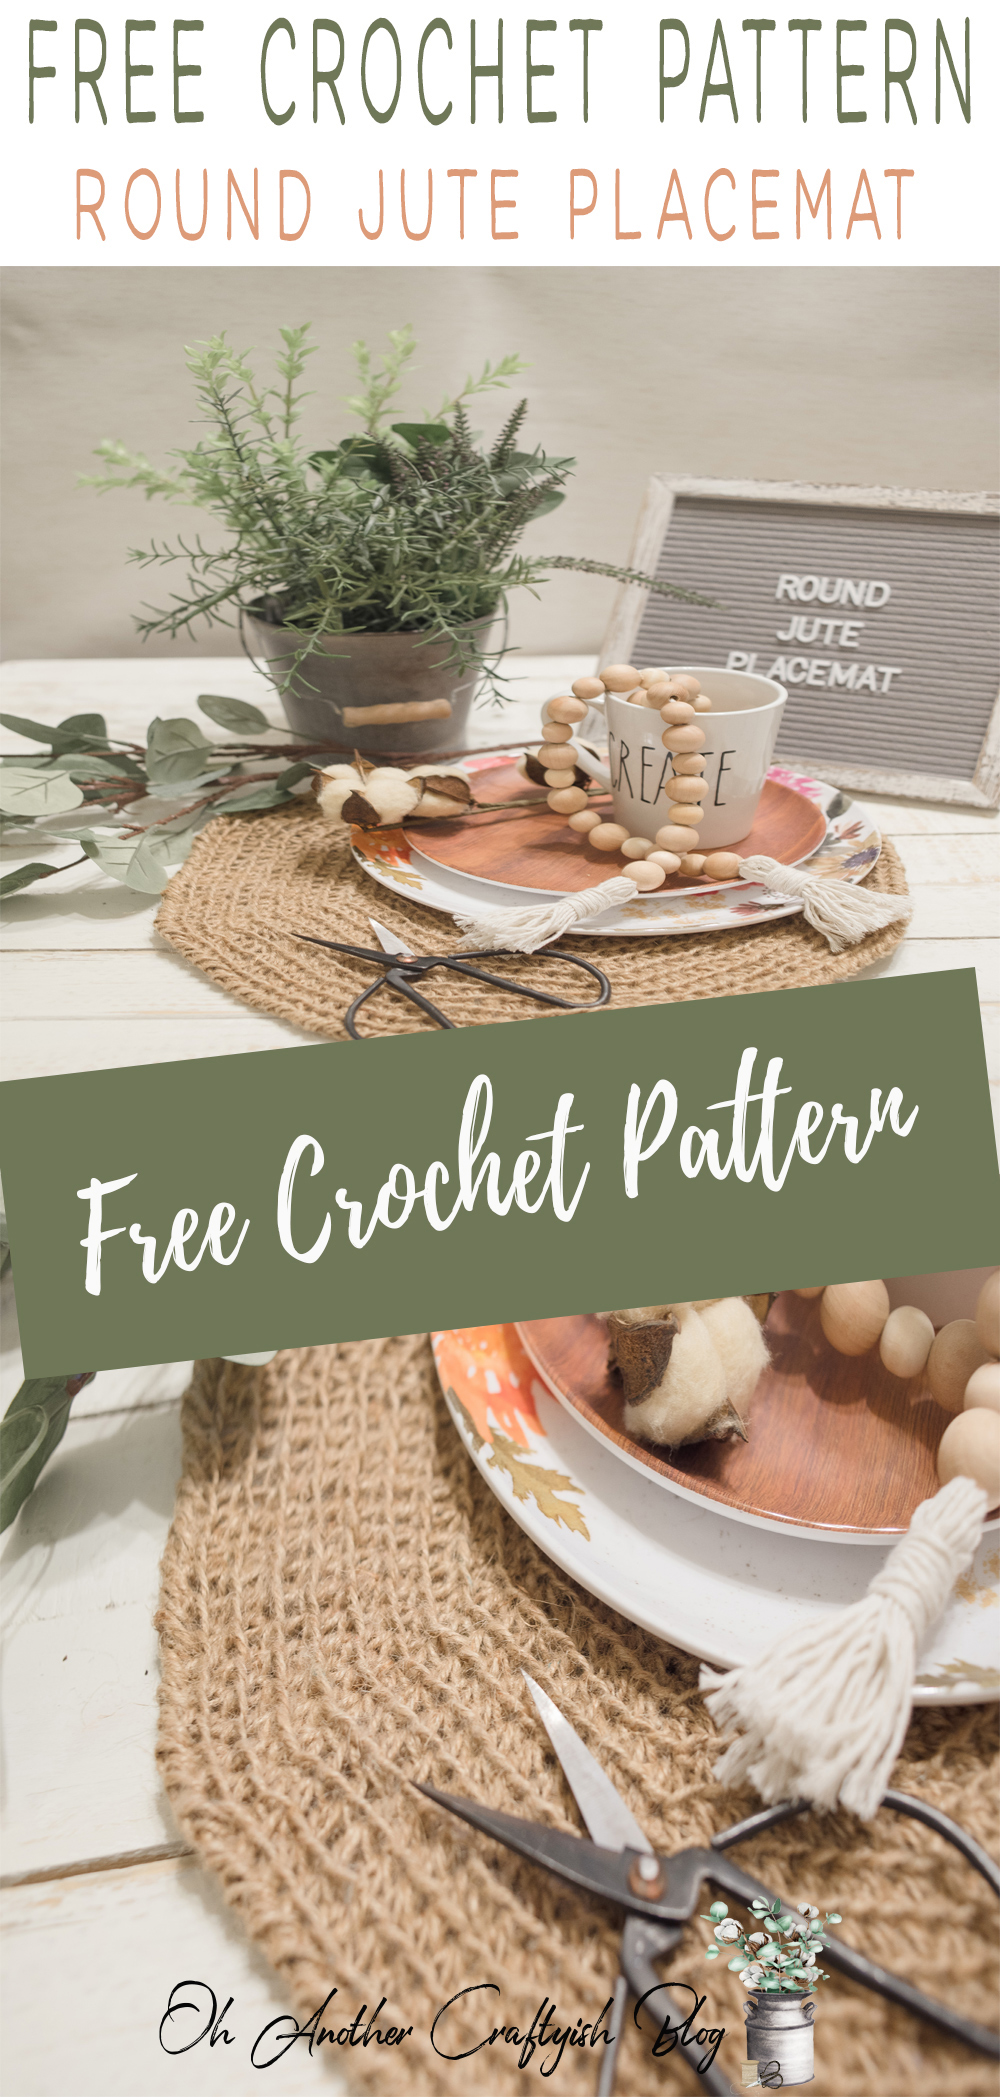 Free Crochet Pattern For The Round Jute Placemat